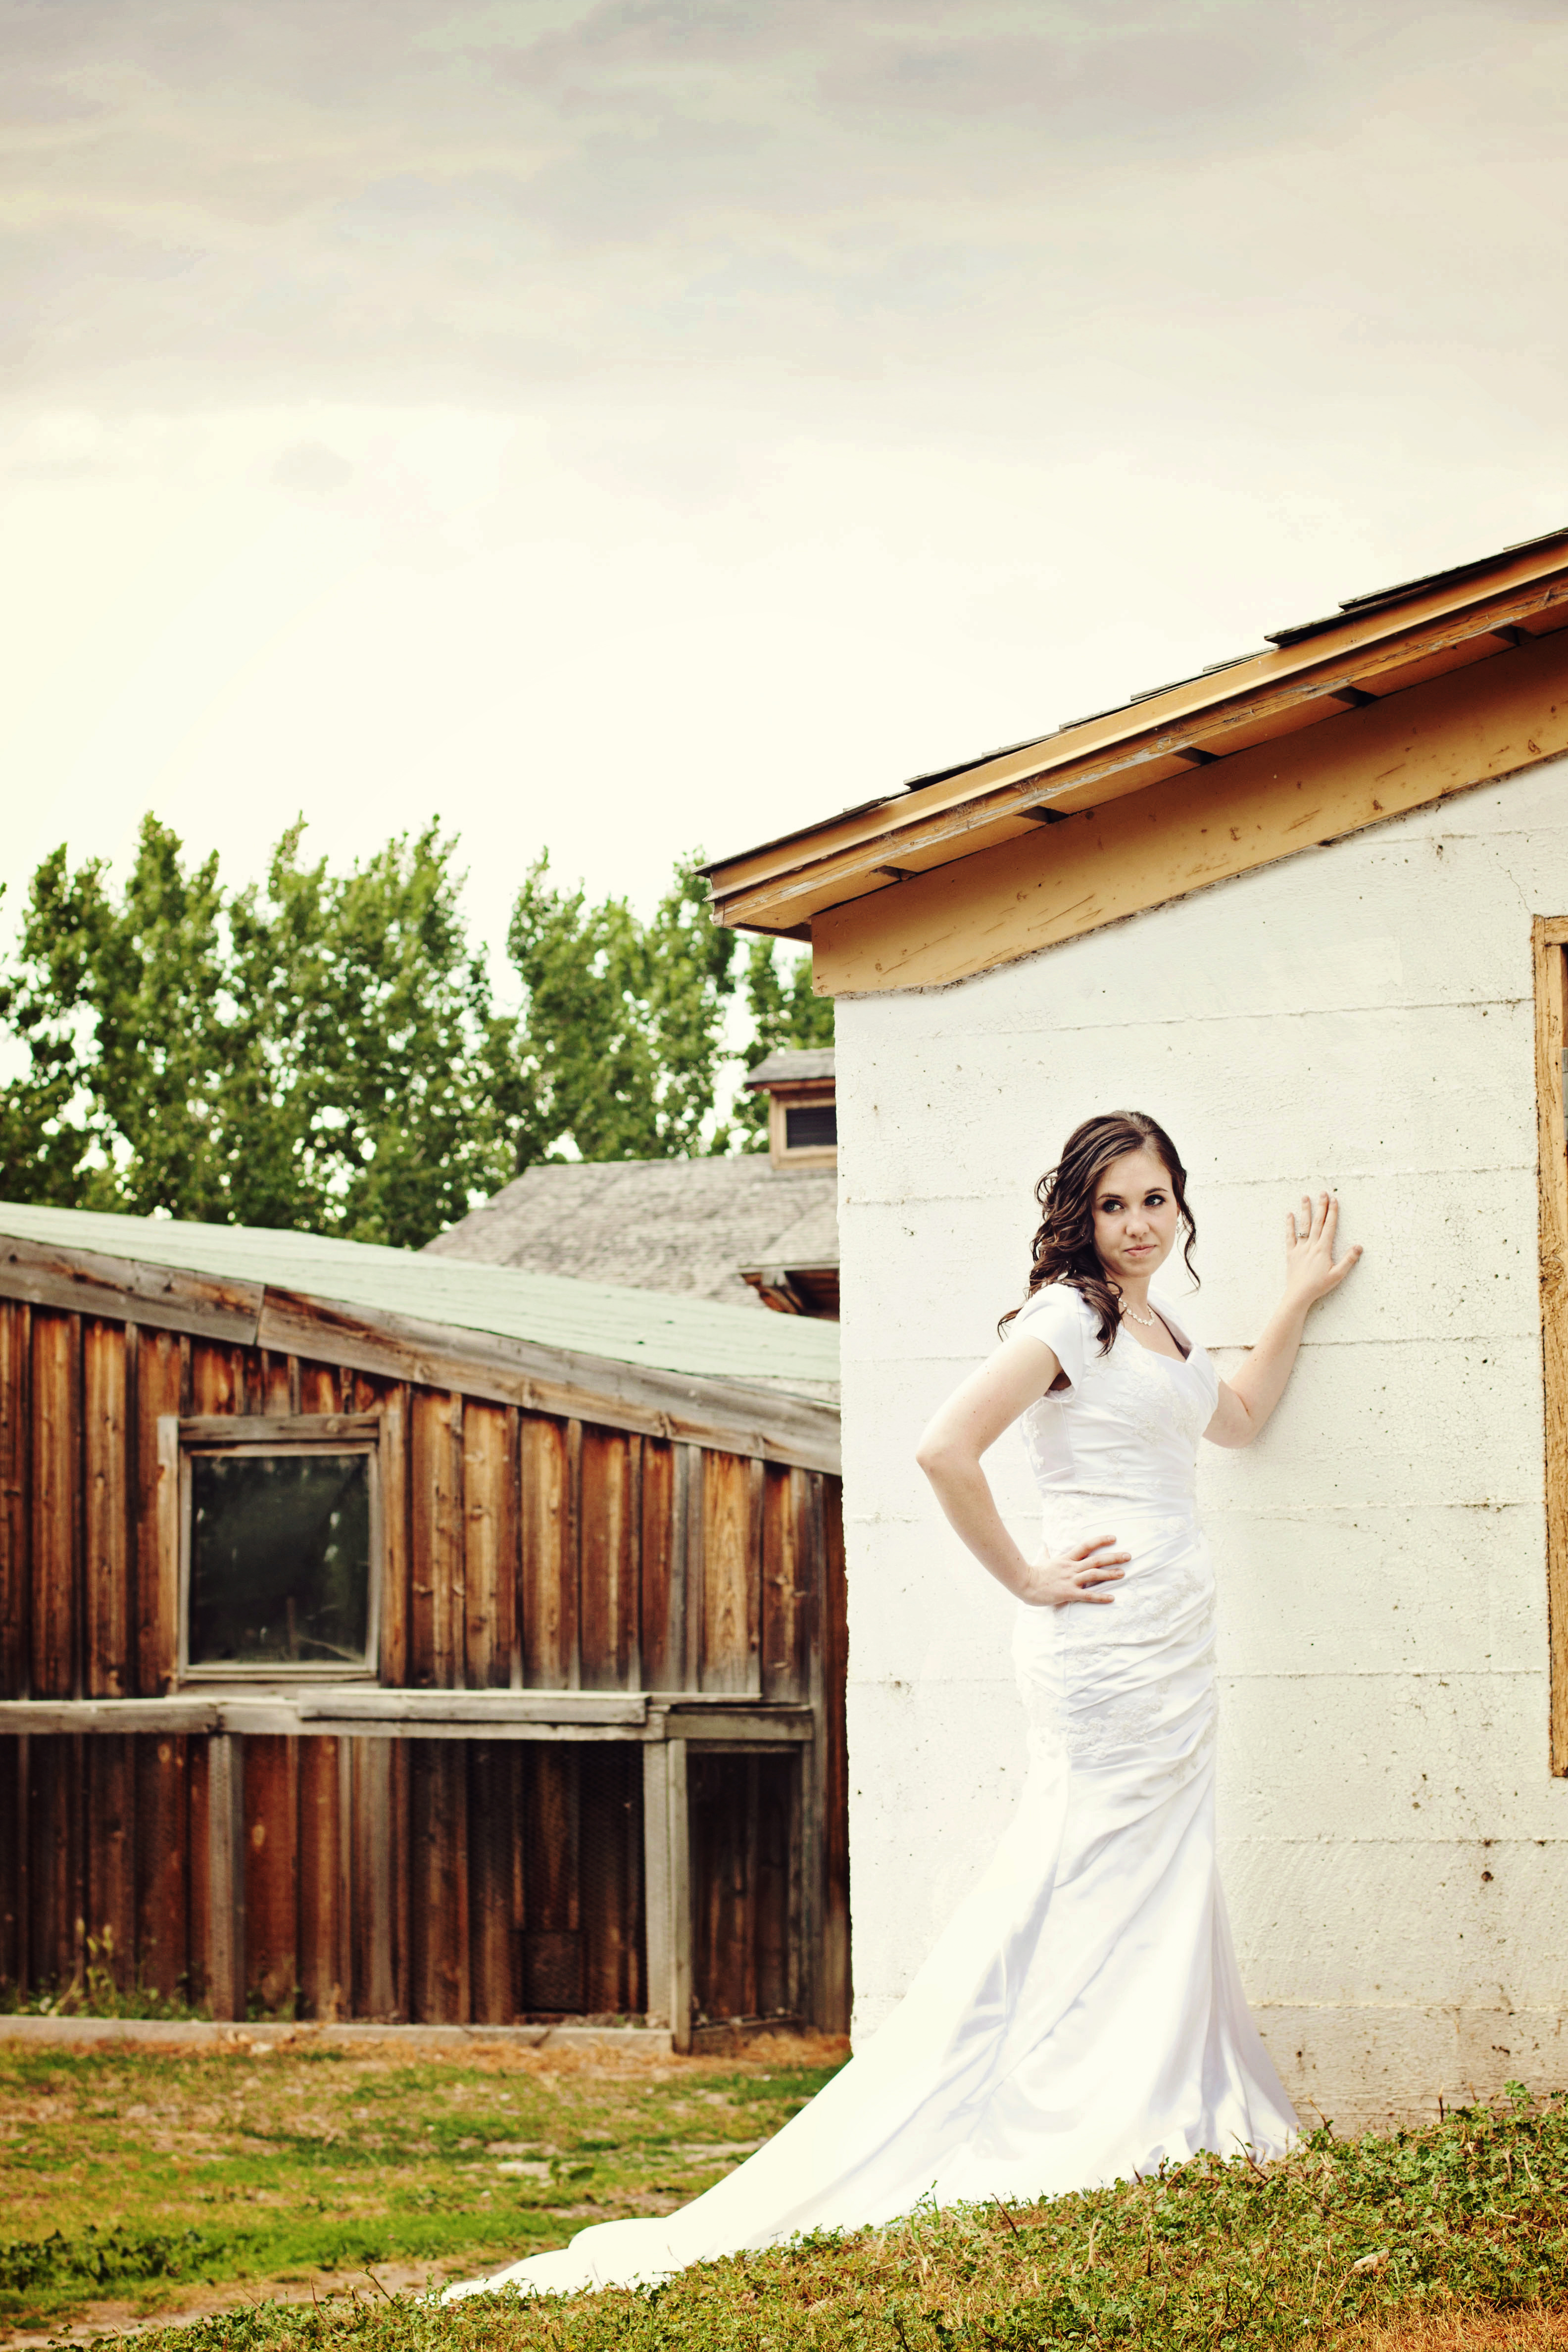 Engagement photography locations effervescent media for Affordable utah wedding photographers